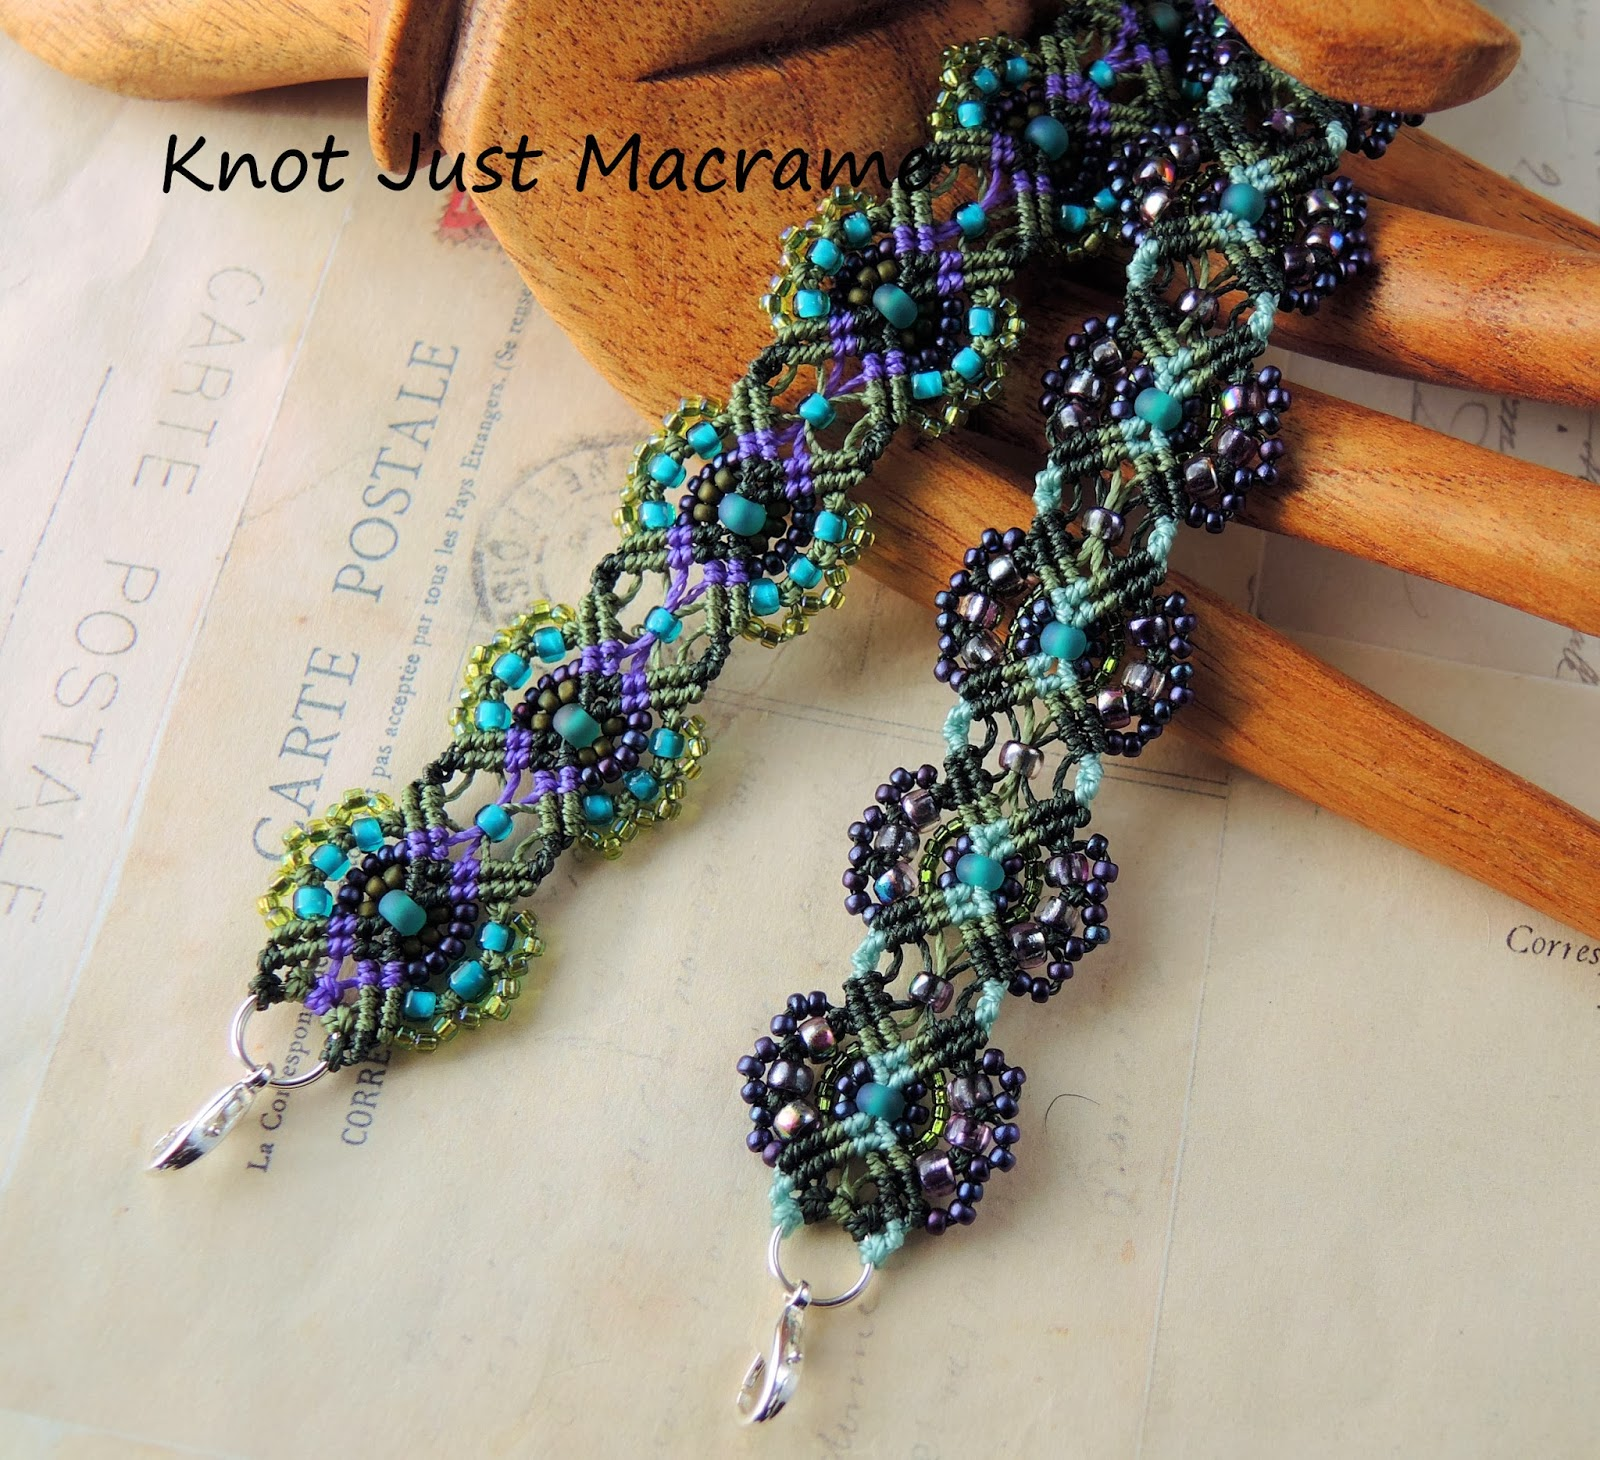 Floral micro macrame bracelets in teal, purple and olive by Knot Just Macrame